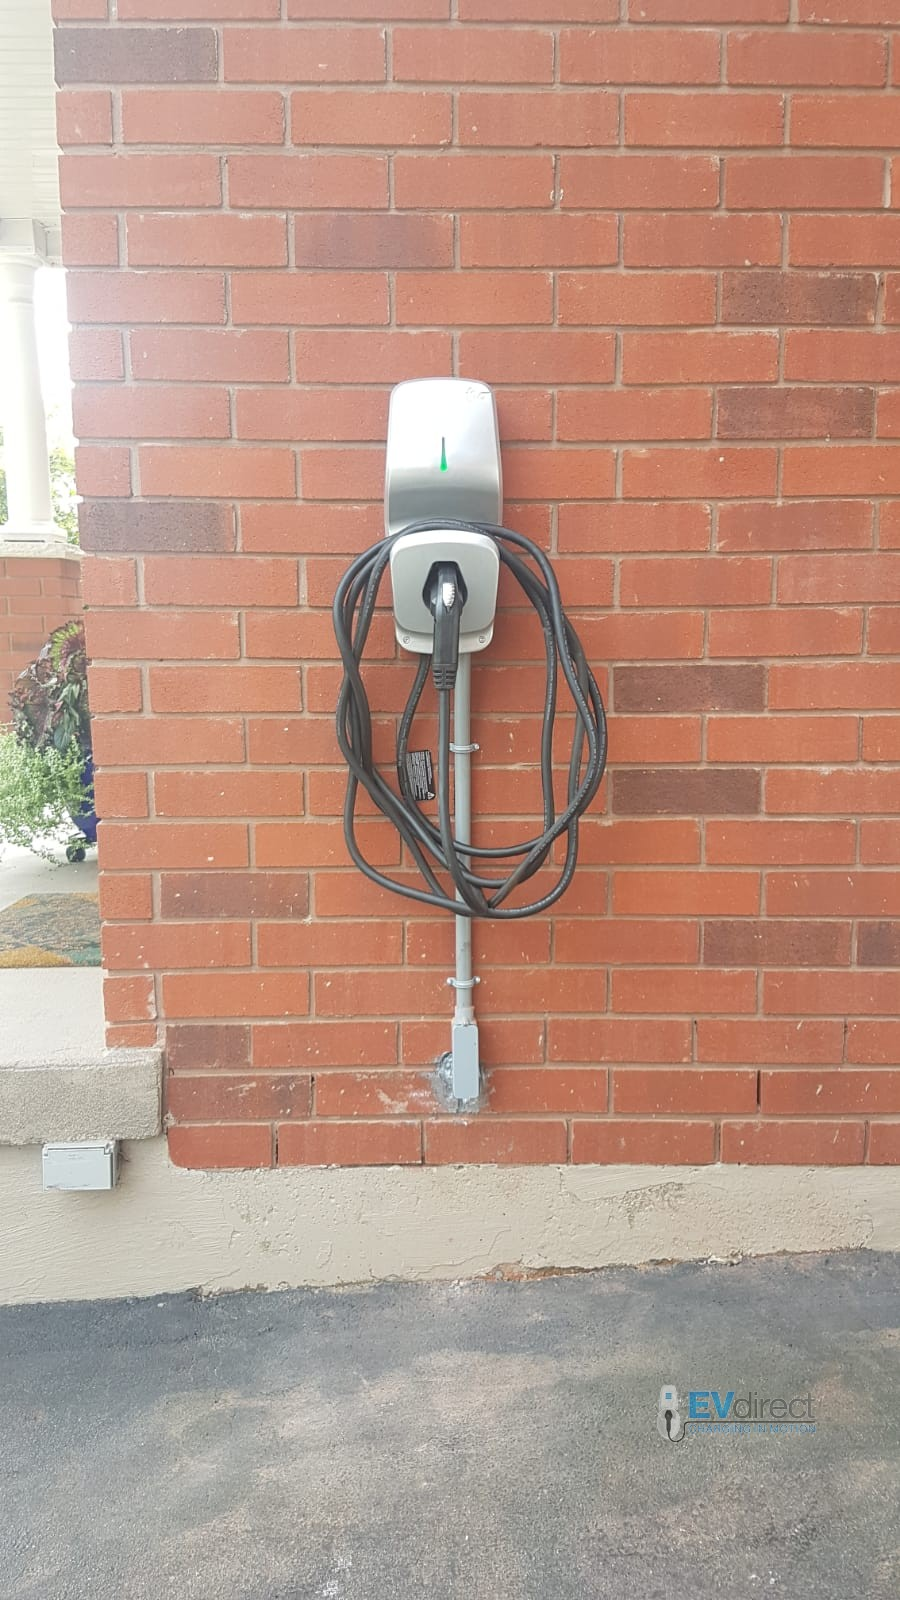 Residential EV Charging Station Project pictures in ontario  EVdirect